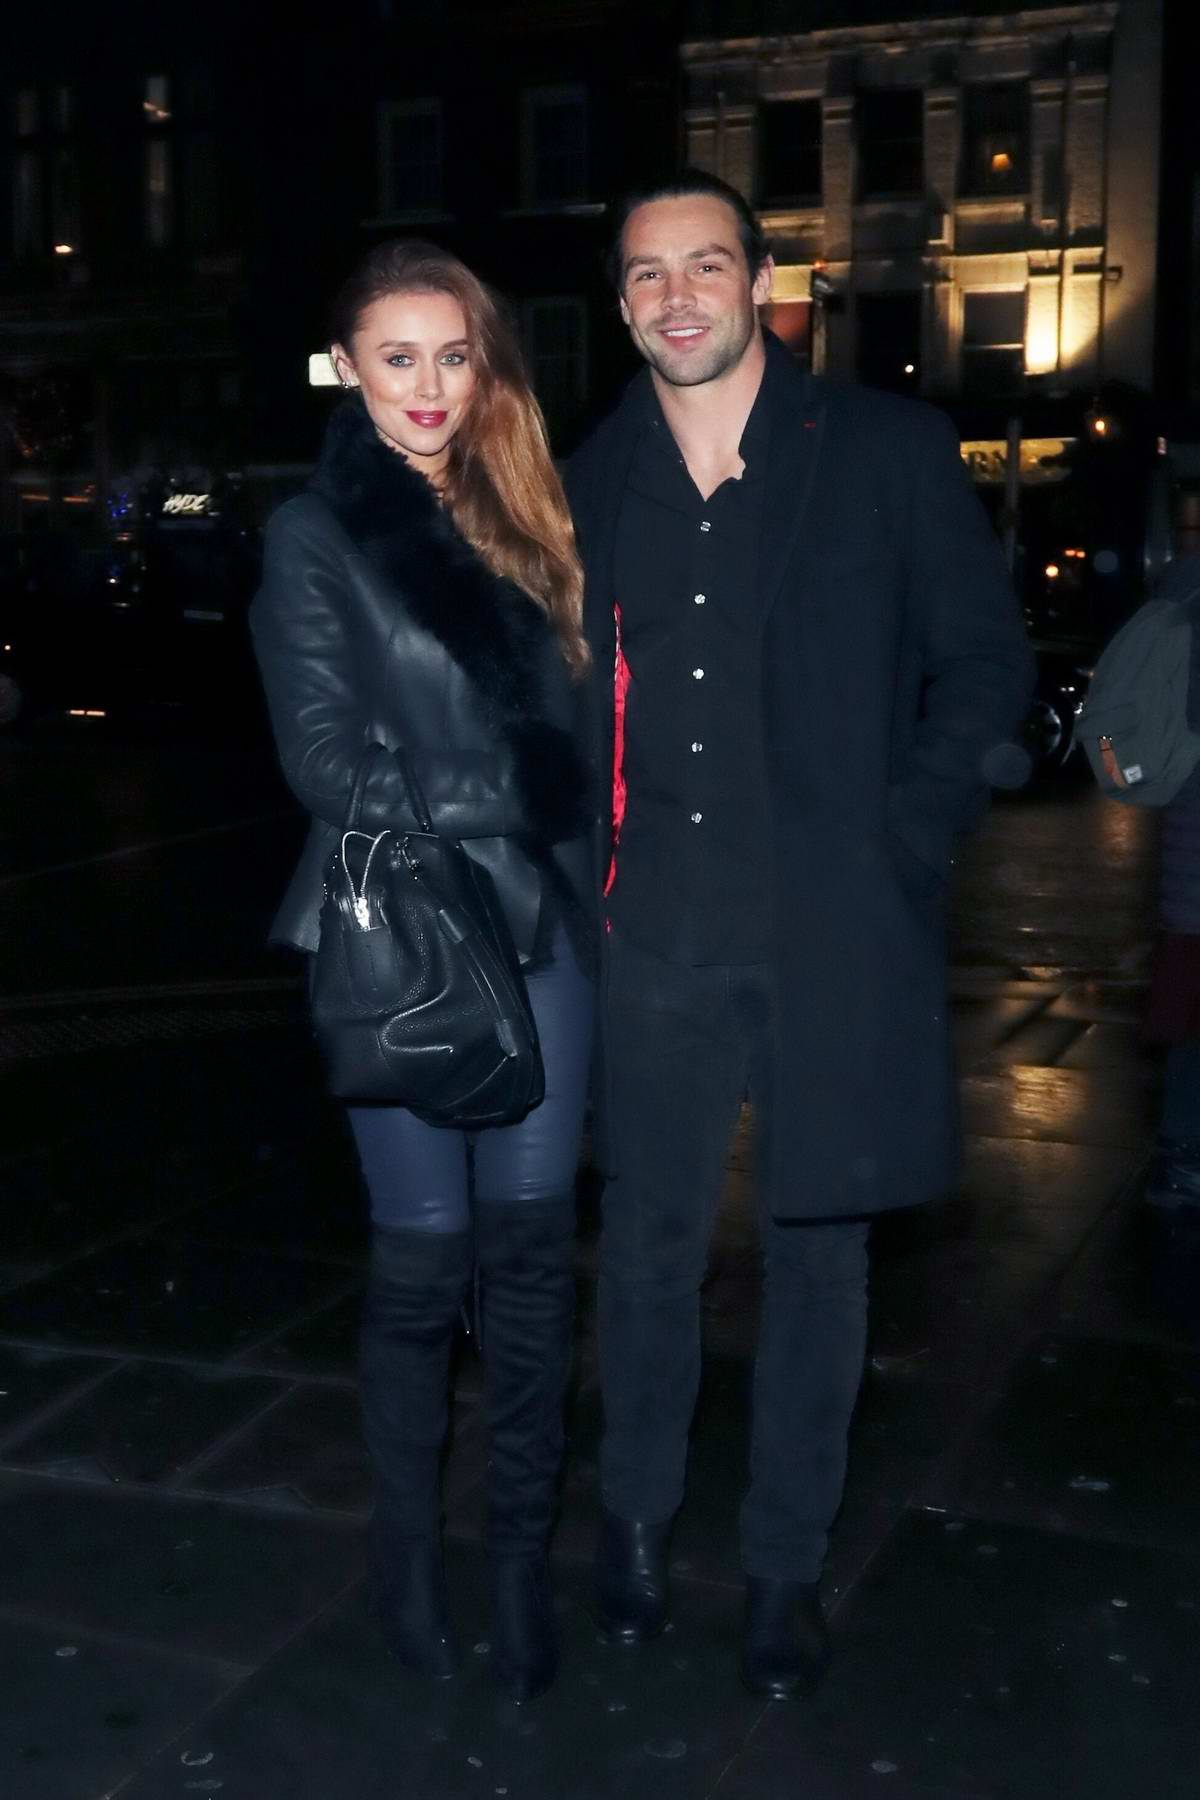 Una Healy and Ben Foden spotted outside Mahiki Kensington in London